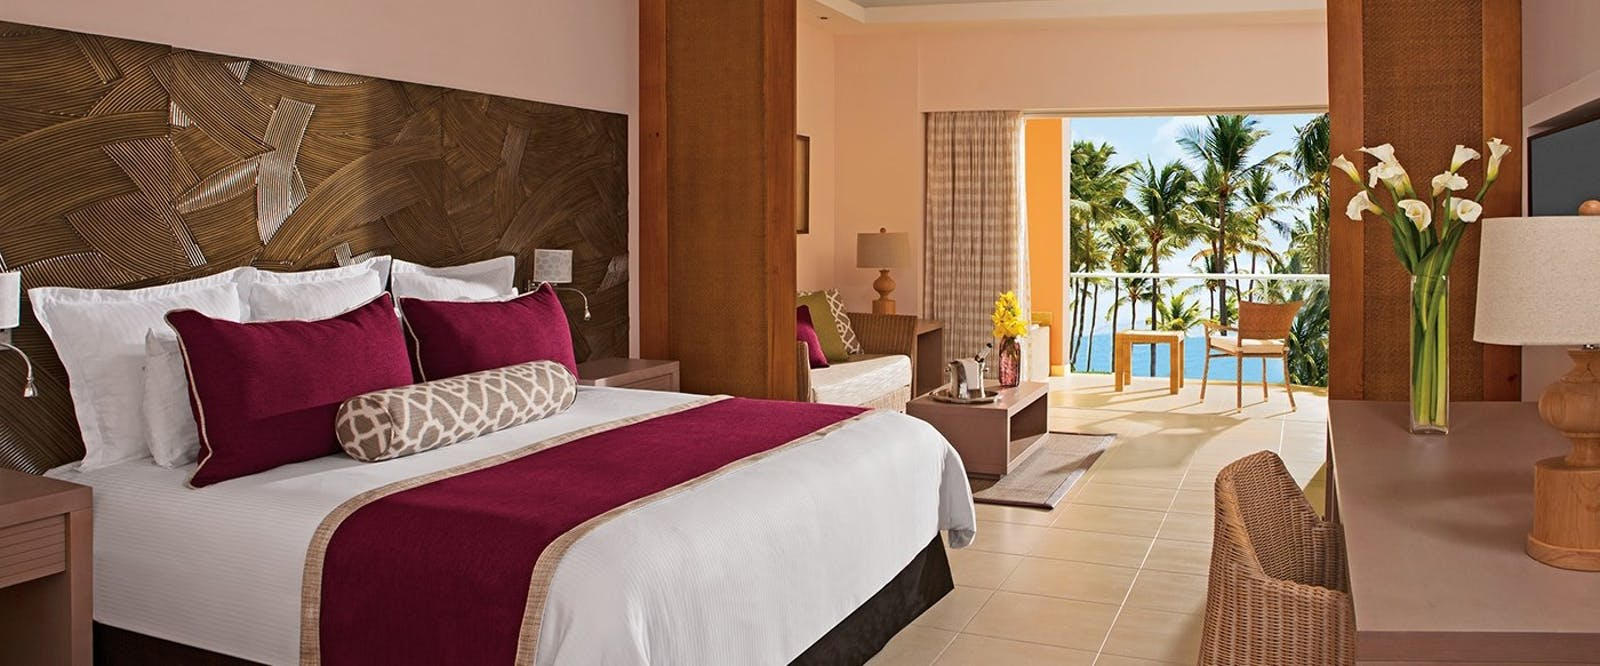 Ocean View at Secrets Royal Beach Punta Cana, Dominican Republic